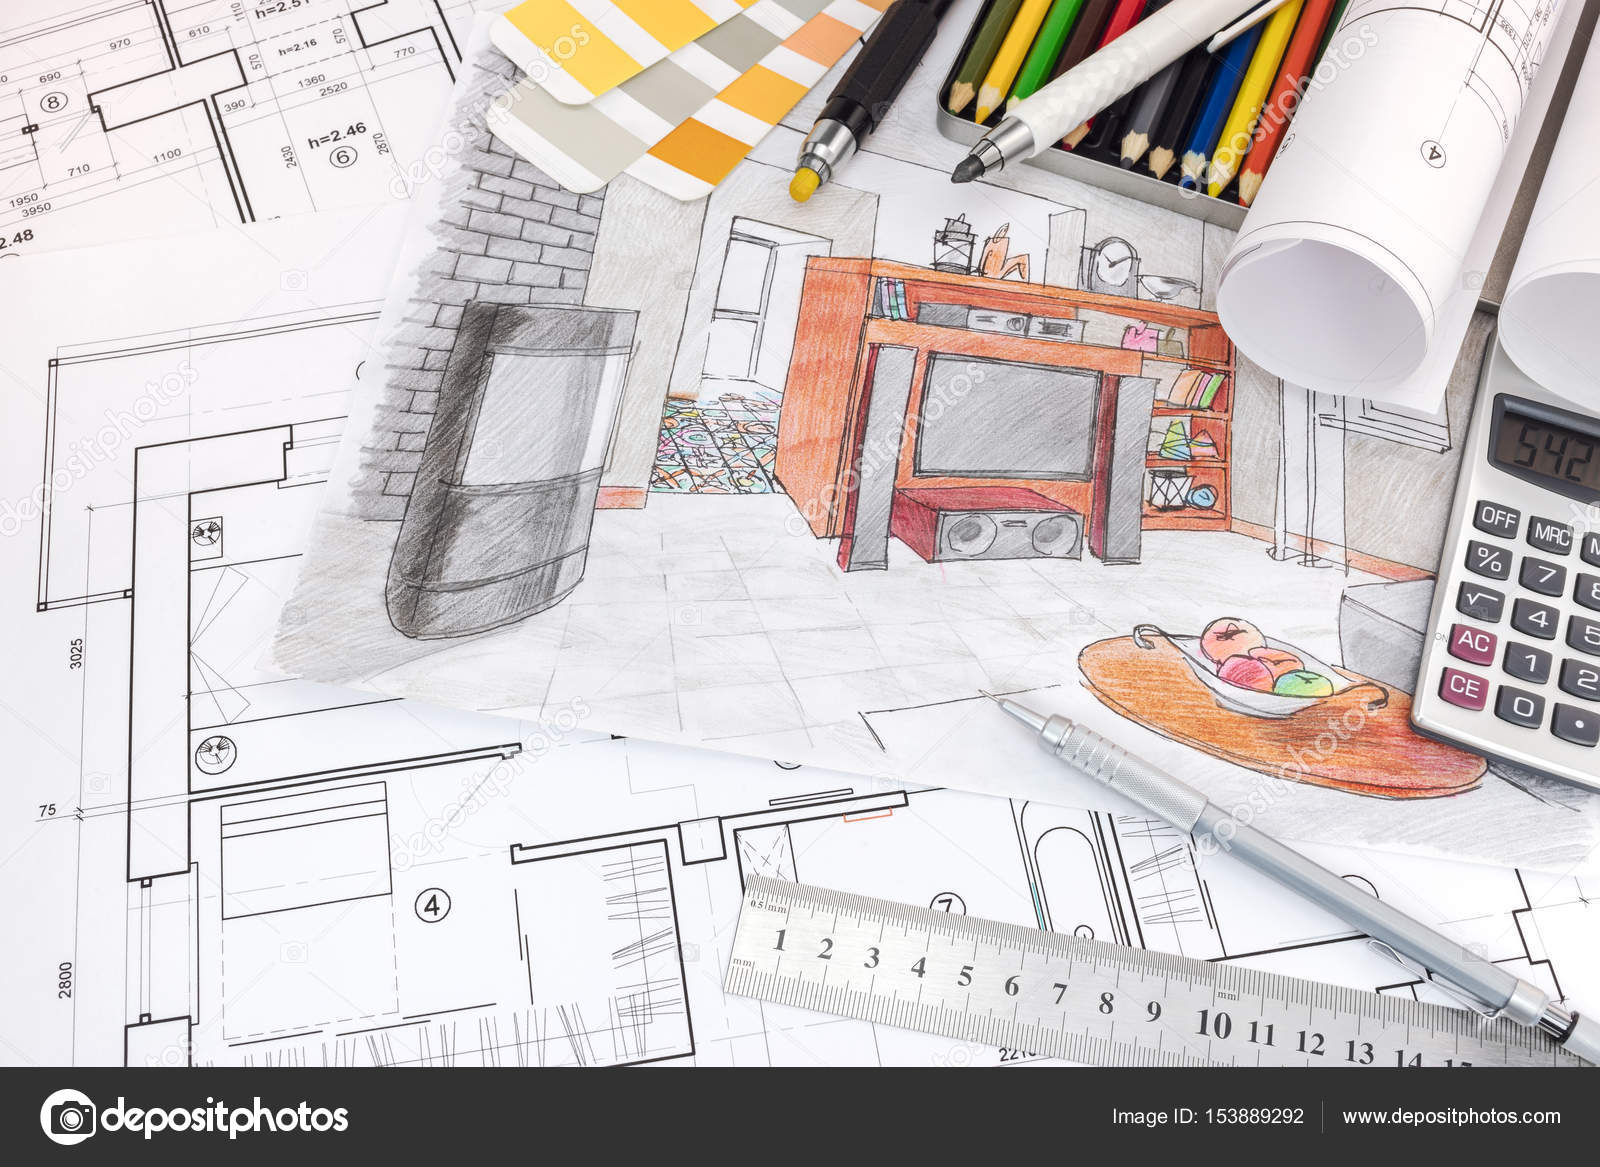 Interior Designer Workspace With Sketches Of Apartment And Drawing Tools U2014  Stock Photo